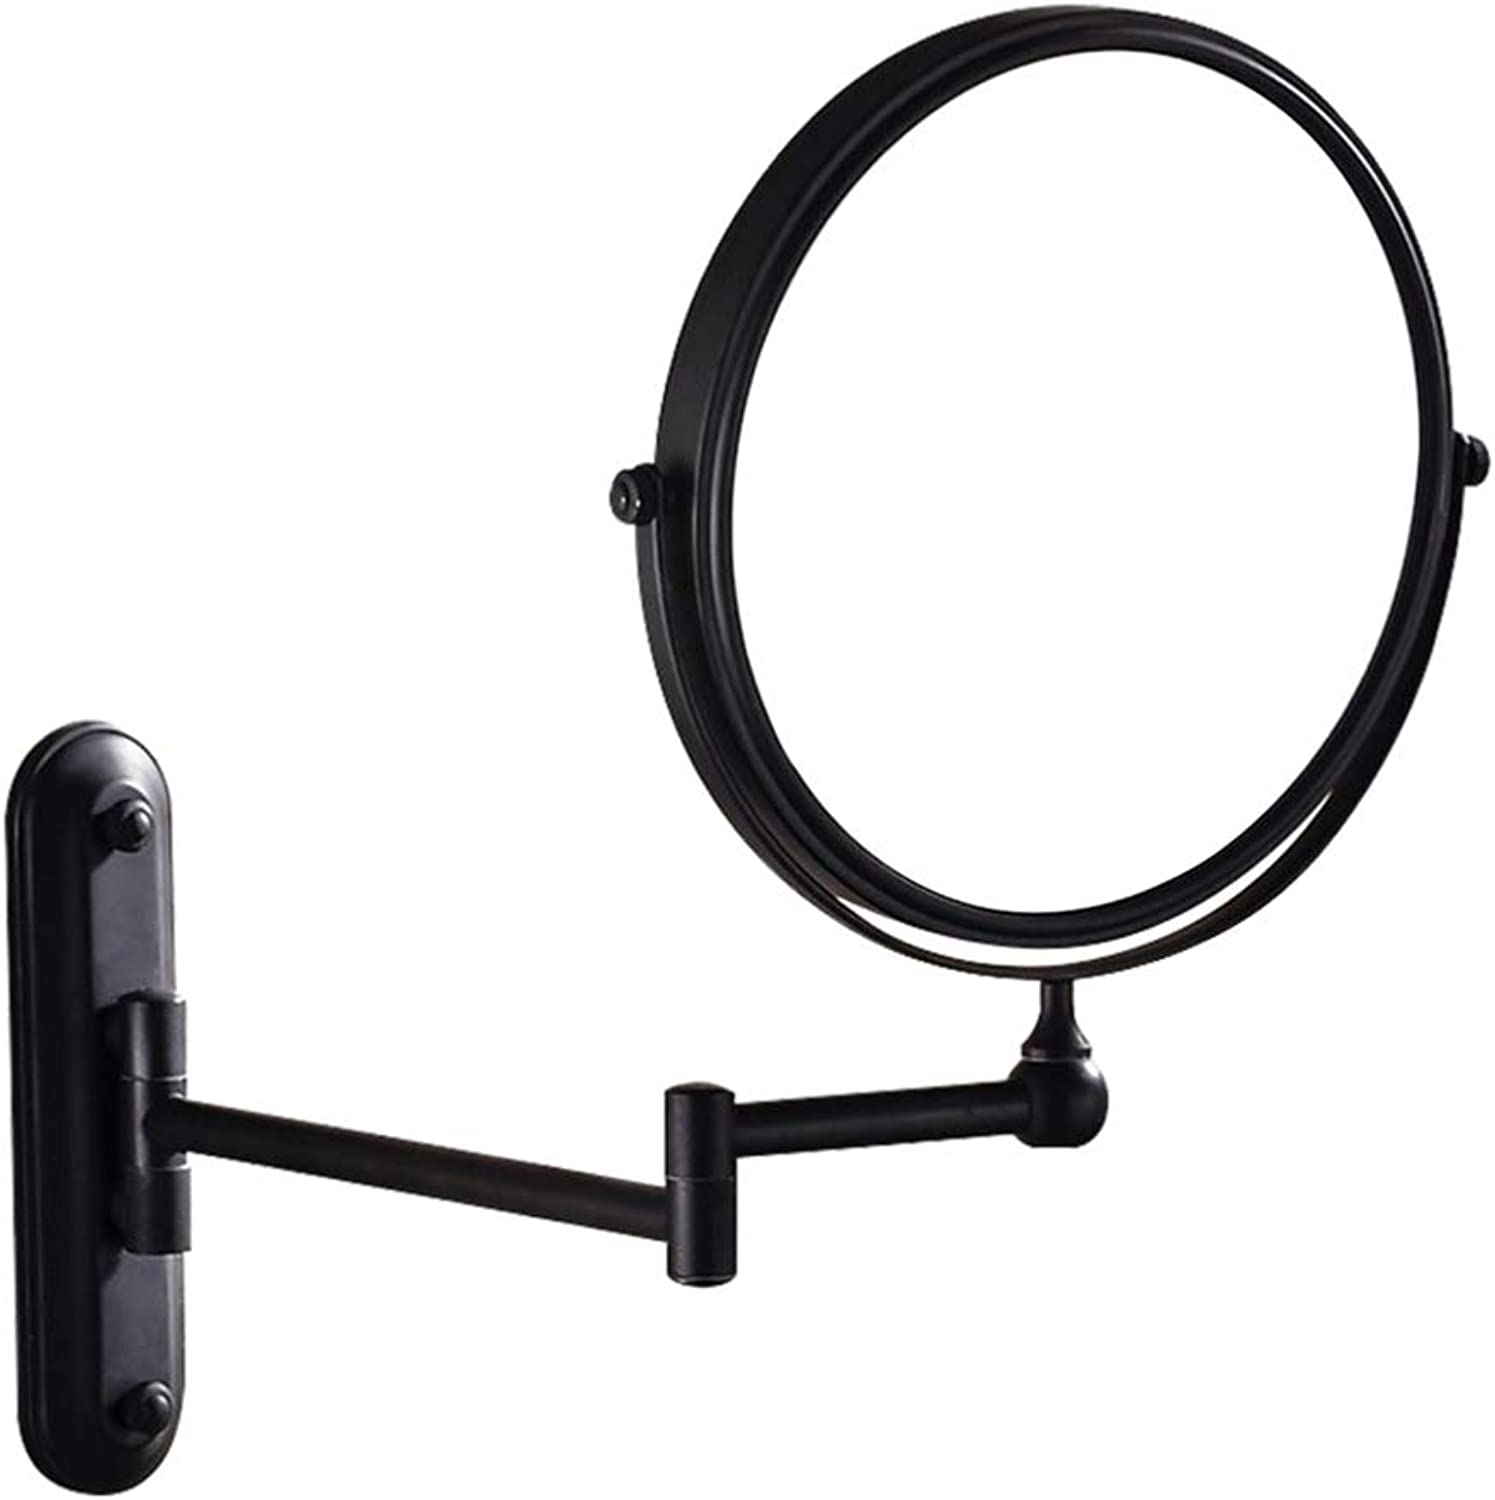 Wall Mounted Bathroom Hotel Makeup Mirror 10x Magnifying Double Sided Extension Arm 360 Degree Swivel Glass Mirrors,8inchs3X